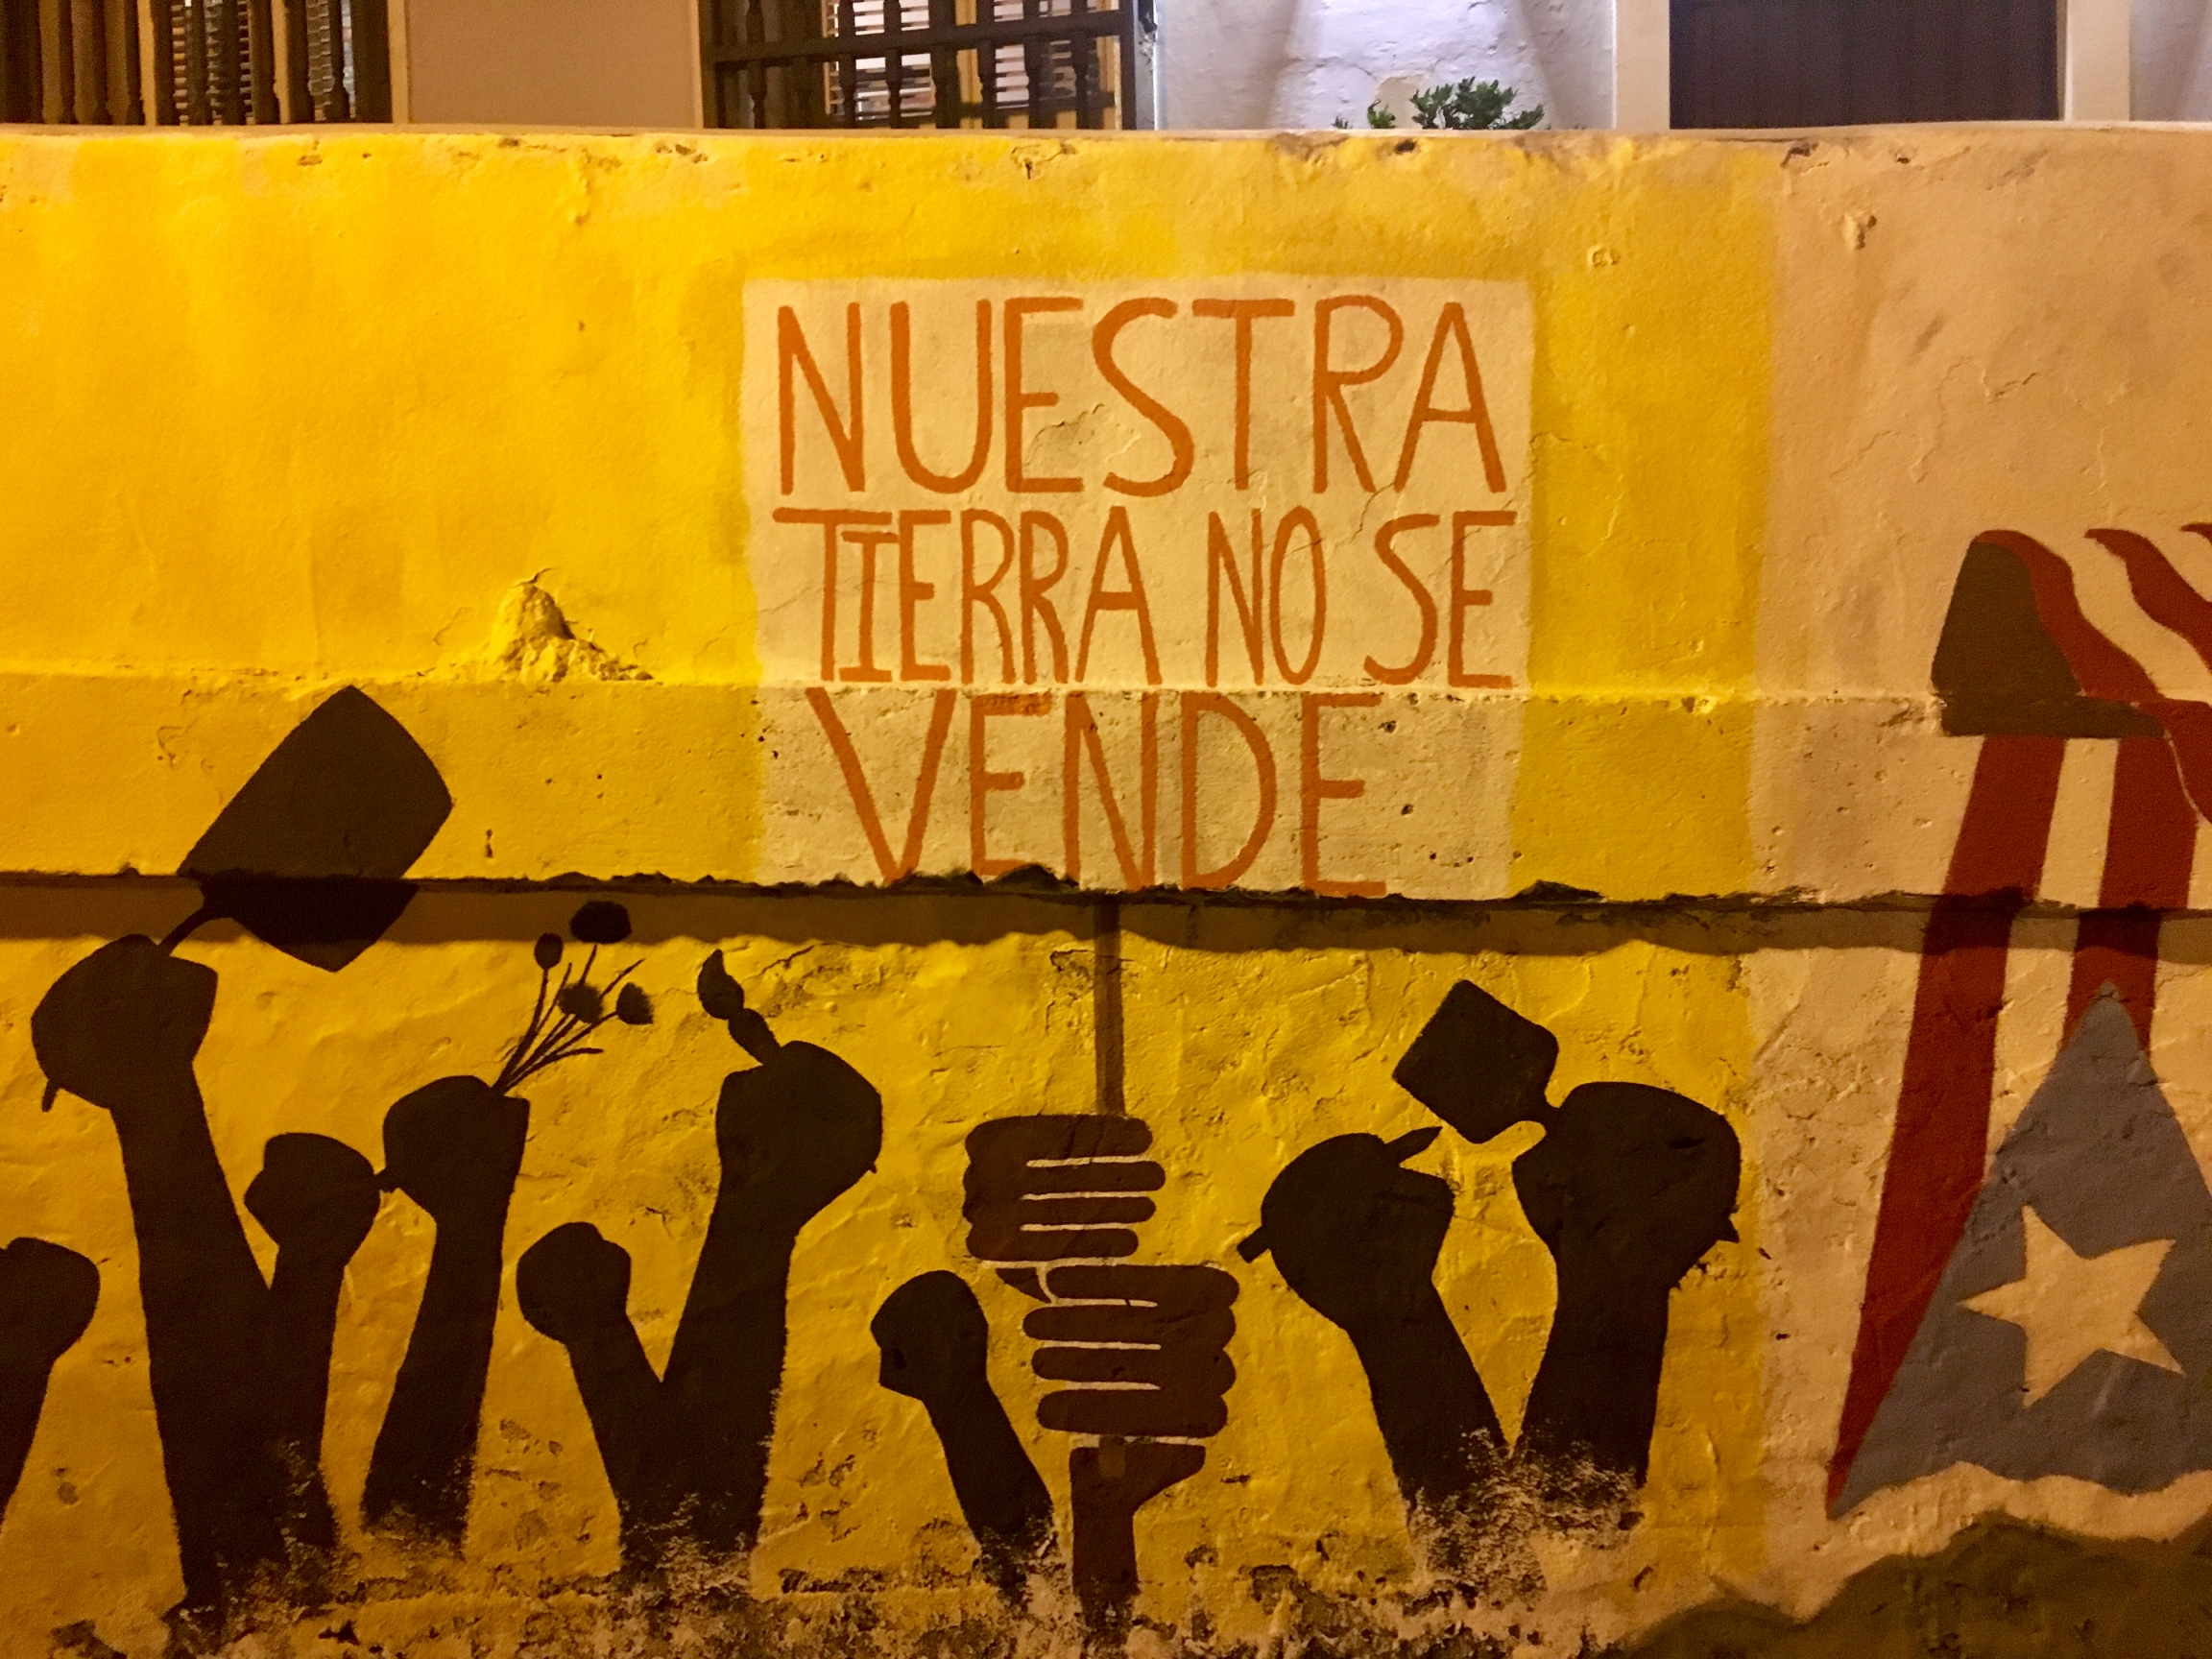 Our land is not for sale painted on a wall in Spanish with yellow paint